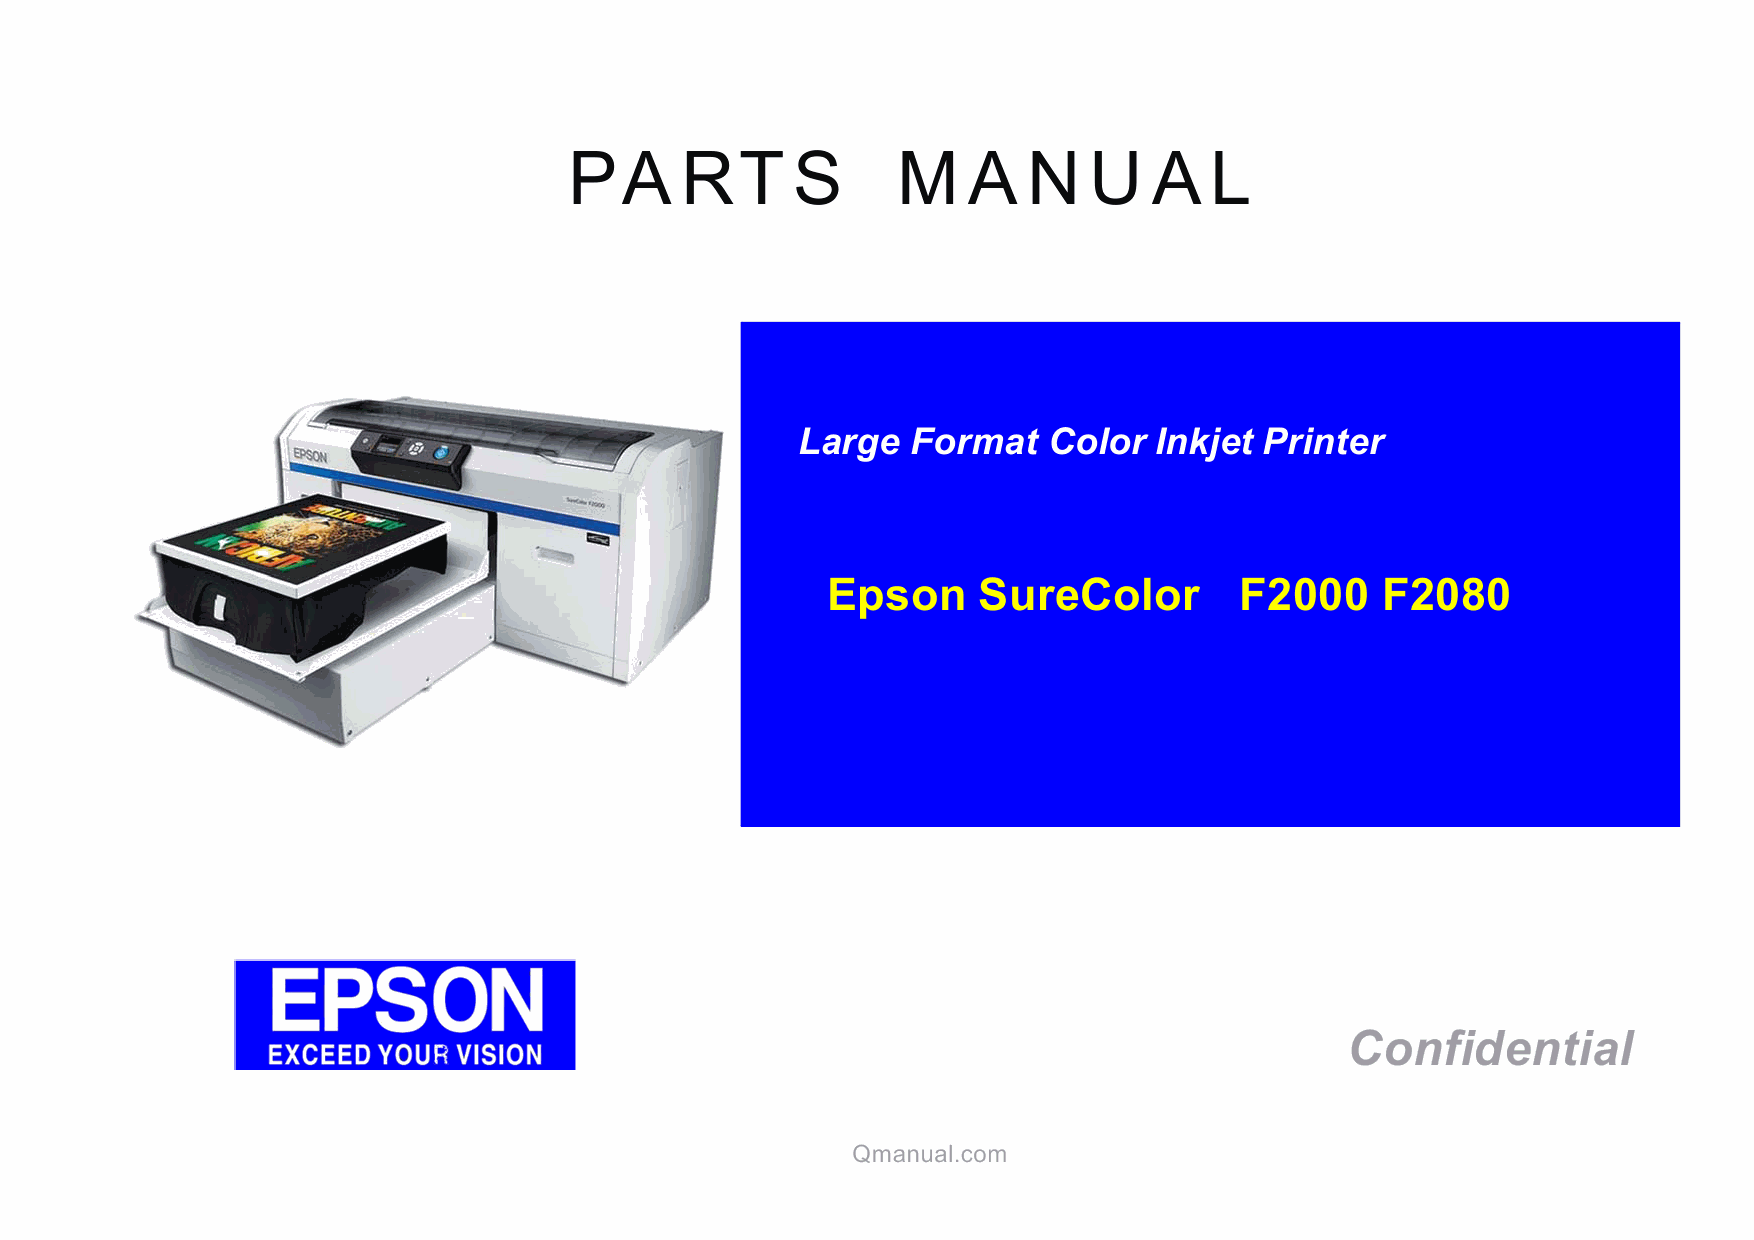 EPSON SureColor F2000 F2080 Parts Manual-1